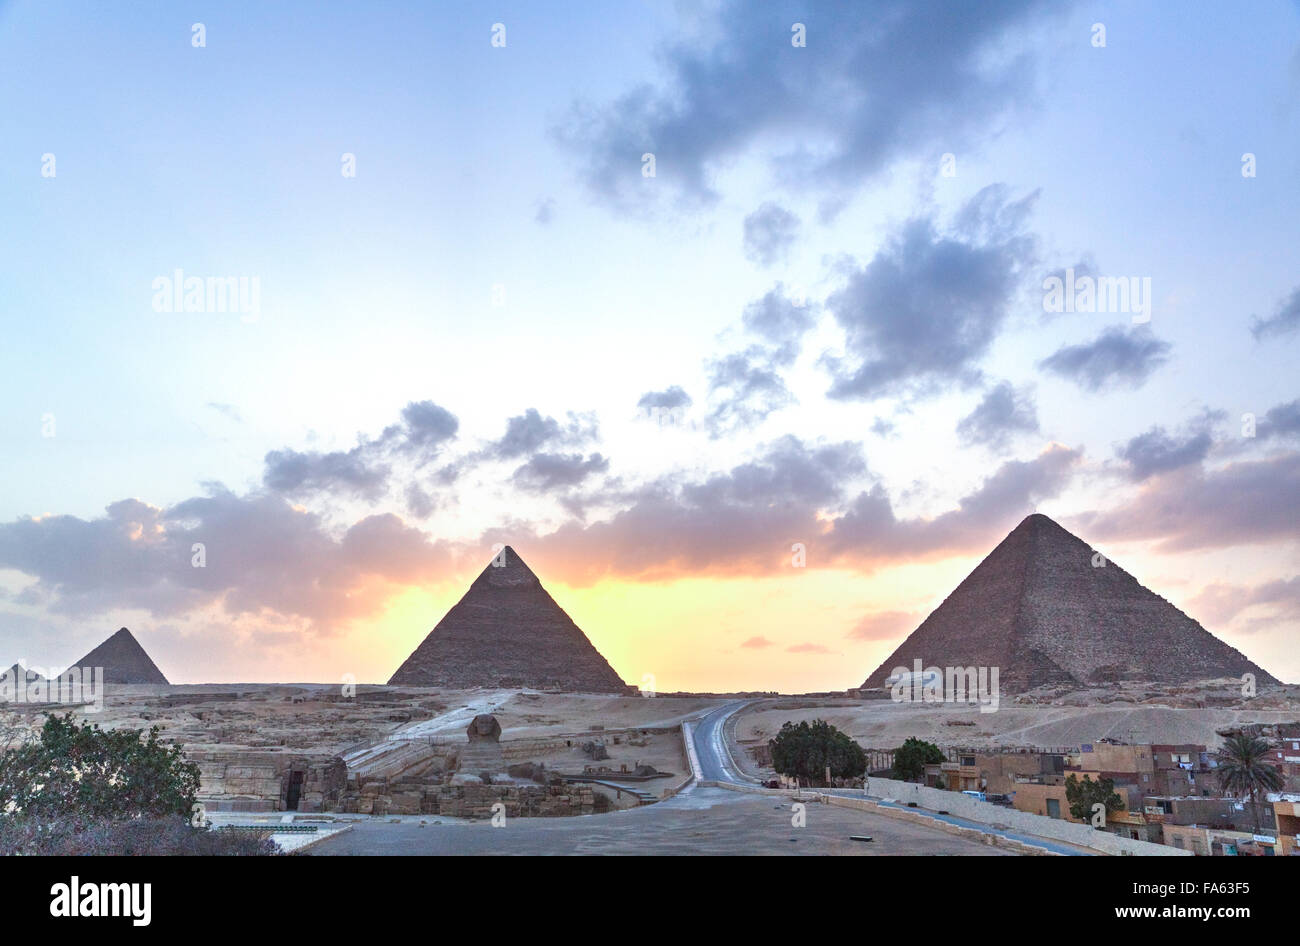 Sunset, The Pyramids of Giza, UNESCO World Heritage Site, Giza, Egypt - Stock Image